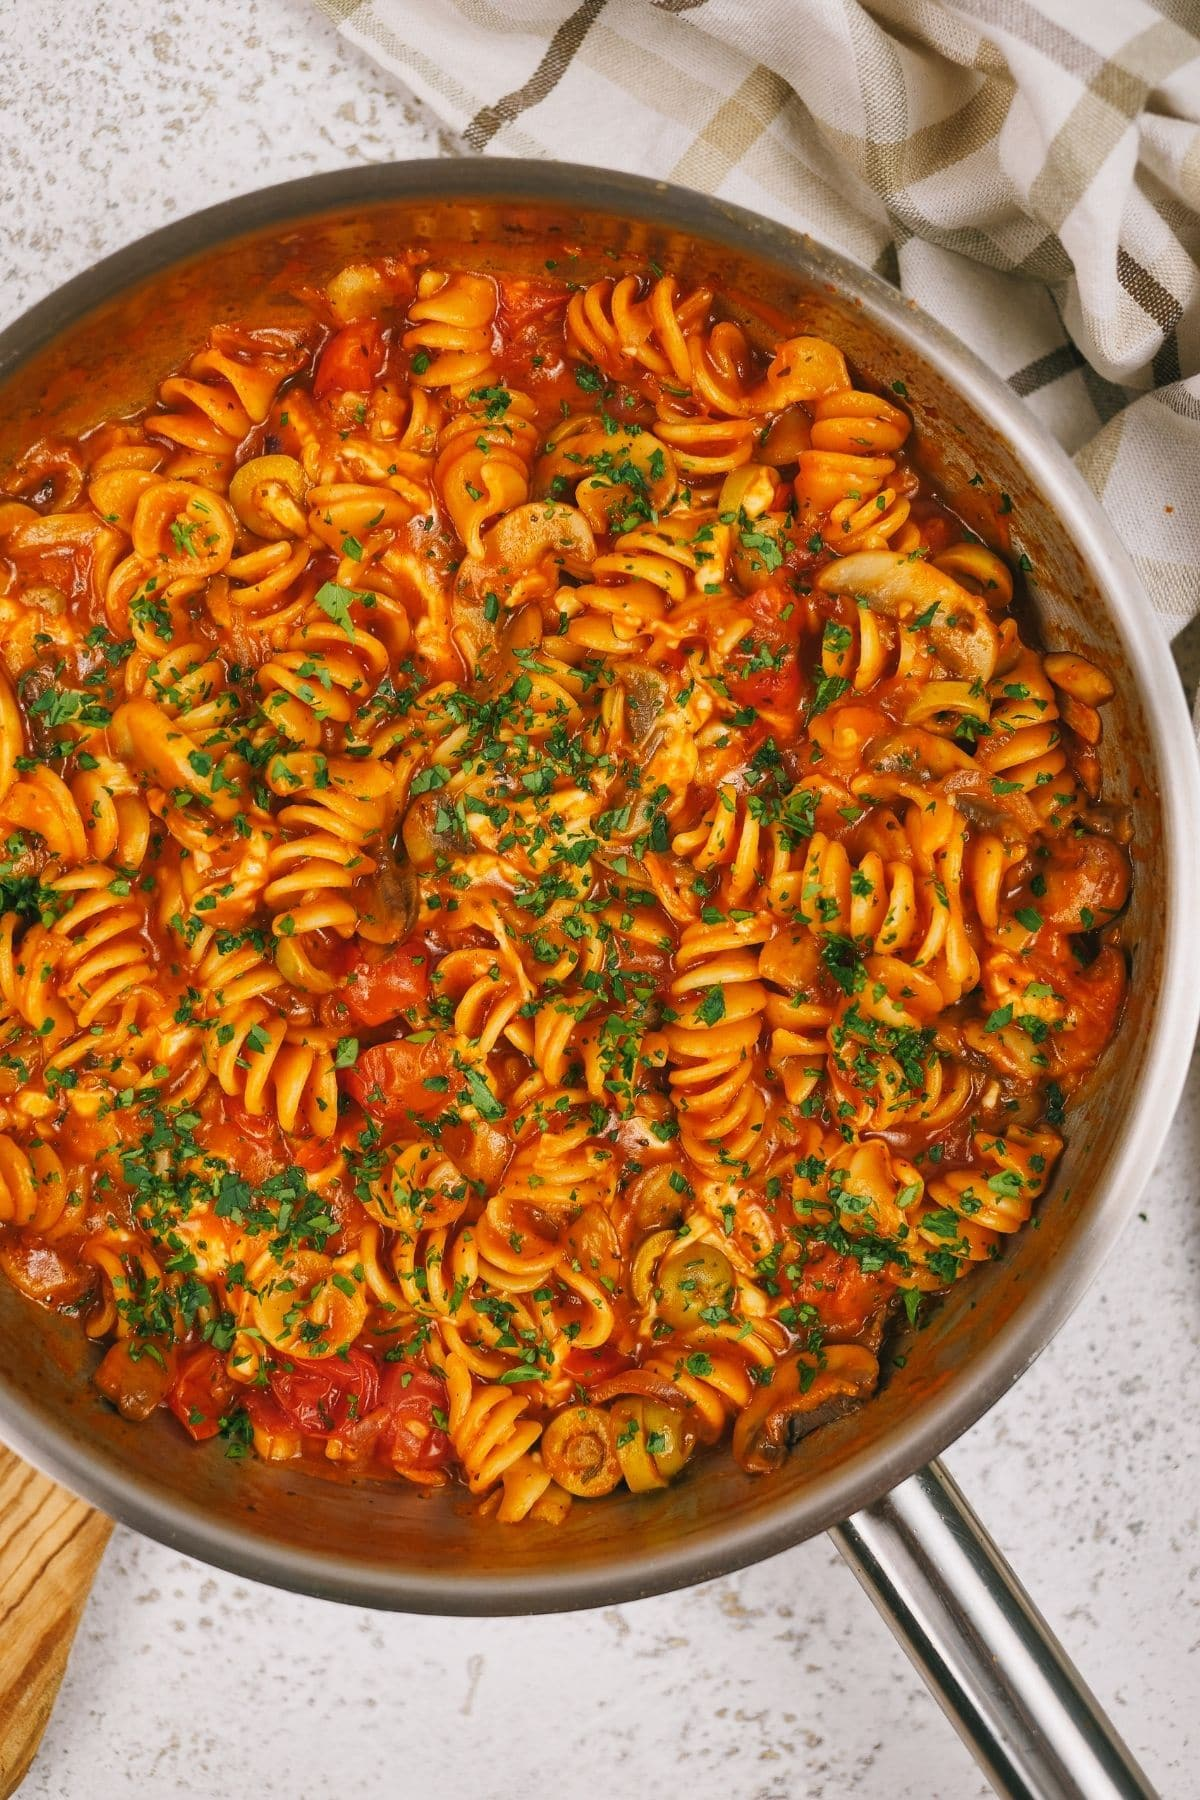 Skillet of rotini with tomato sauce on marble table